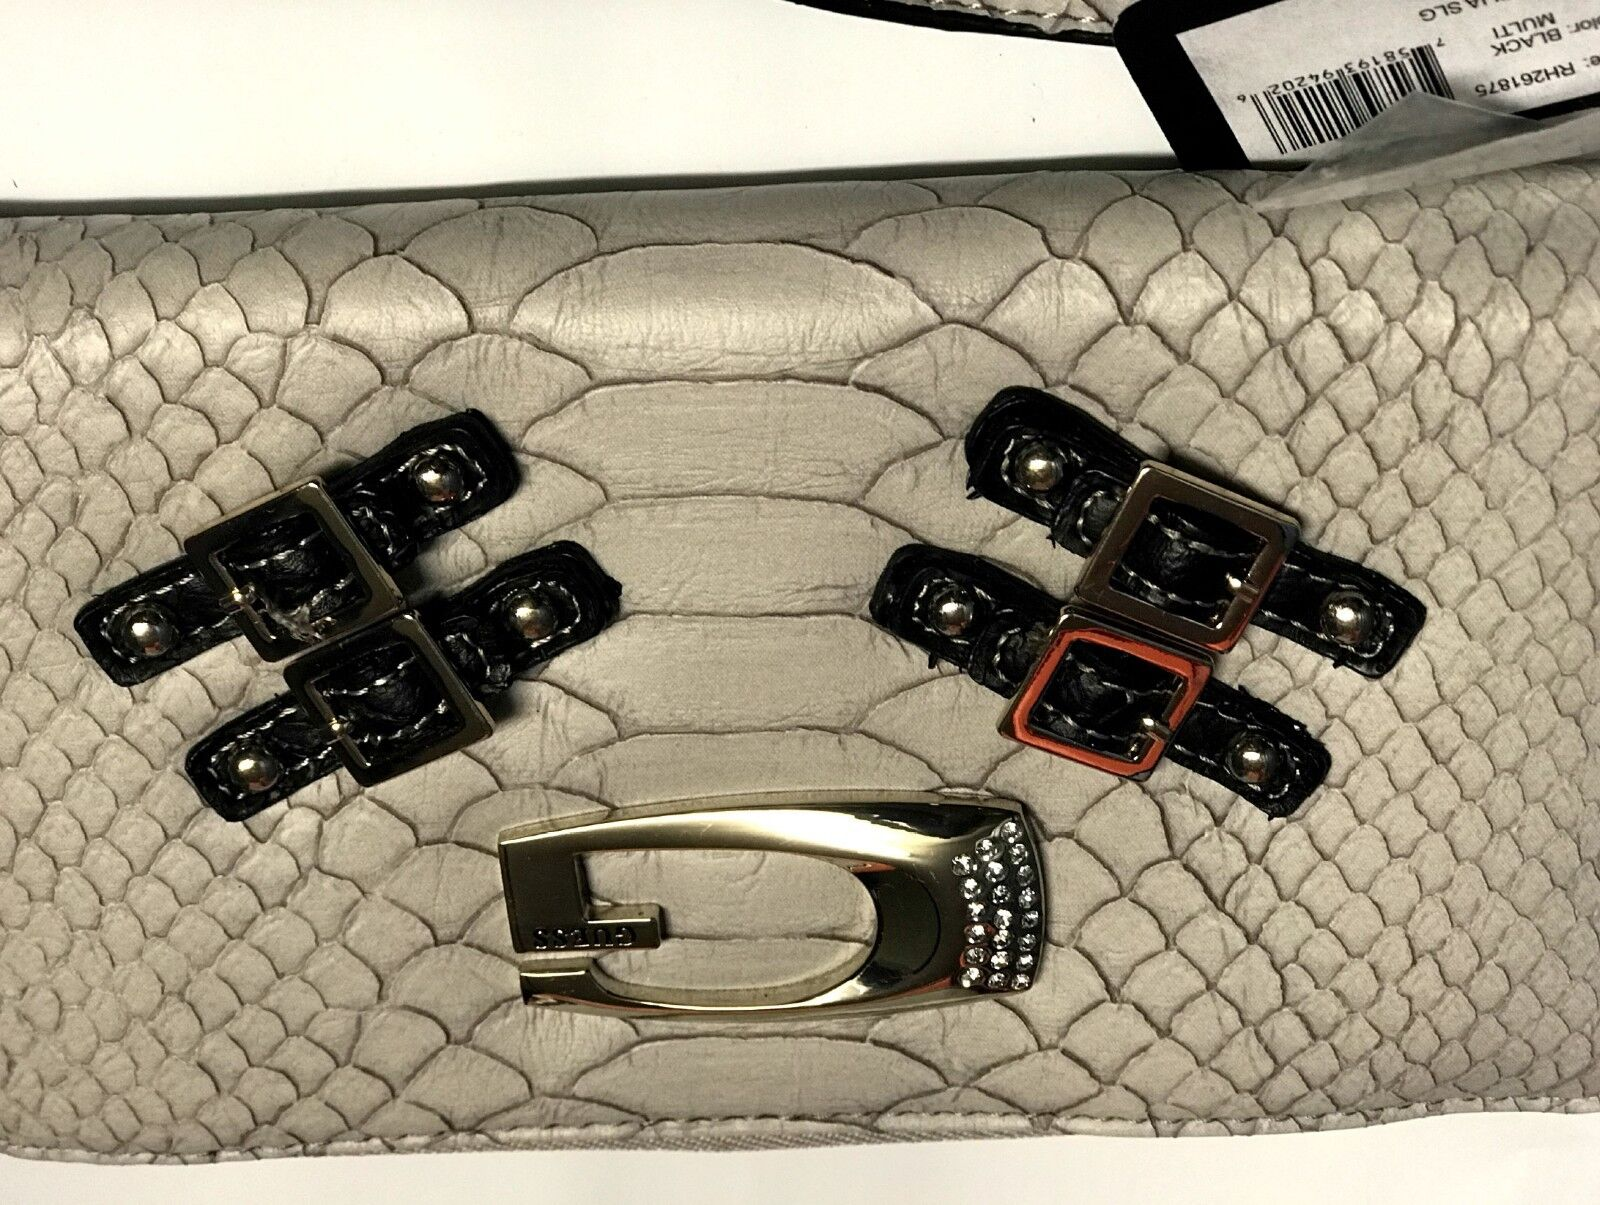 GUESS OTILIA ZIP AROUND LARGE  WALLET for Women's, Black Mul